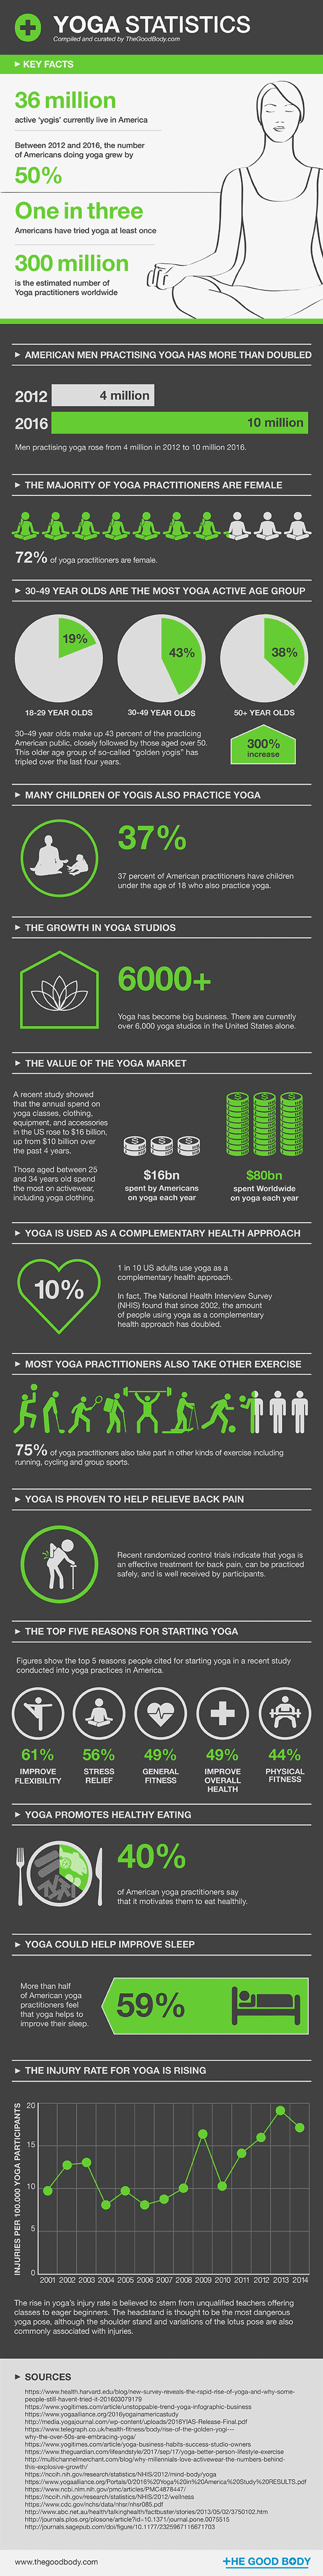 Yoga Statistics – Compiled and curated by The Good Body